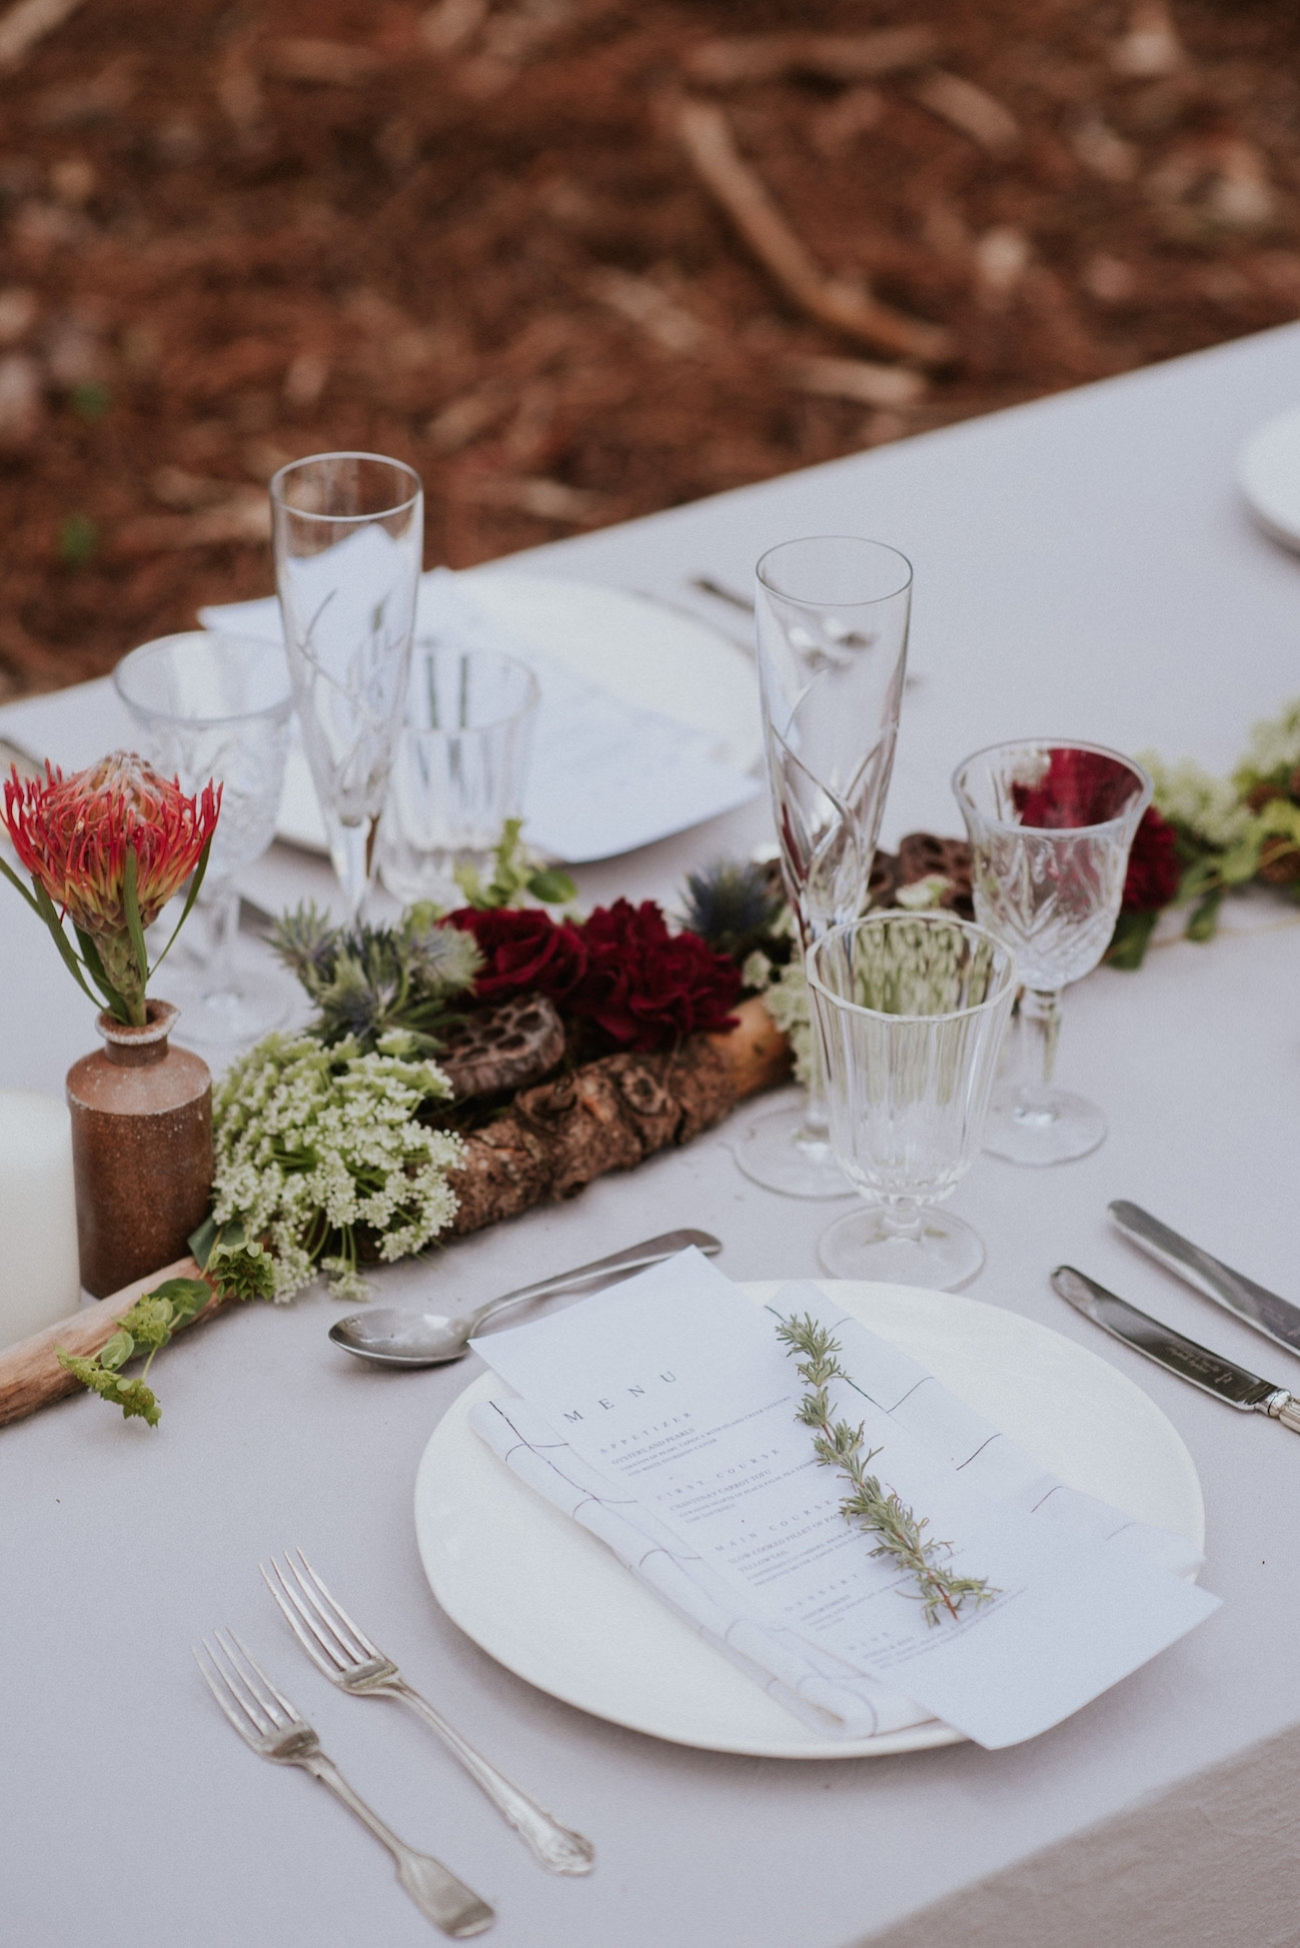 Rustic Tablescape | Credit: Lad & Lass Photography